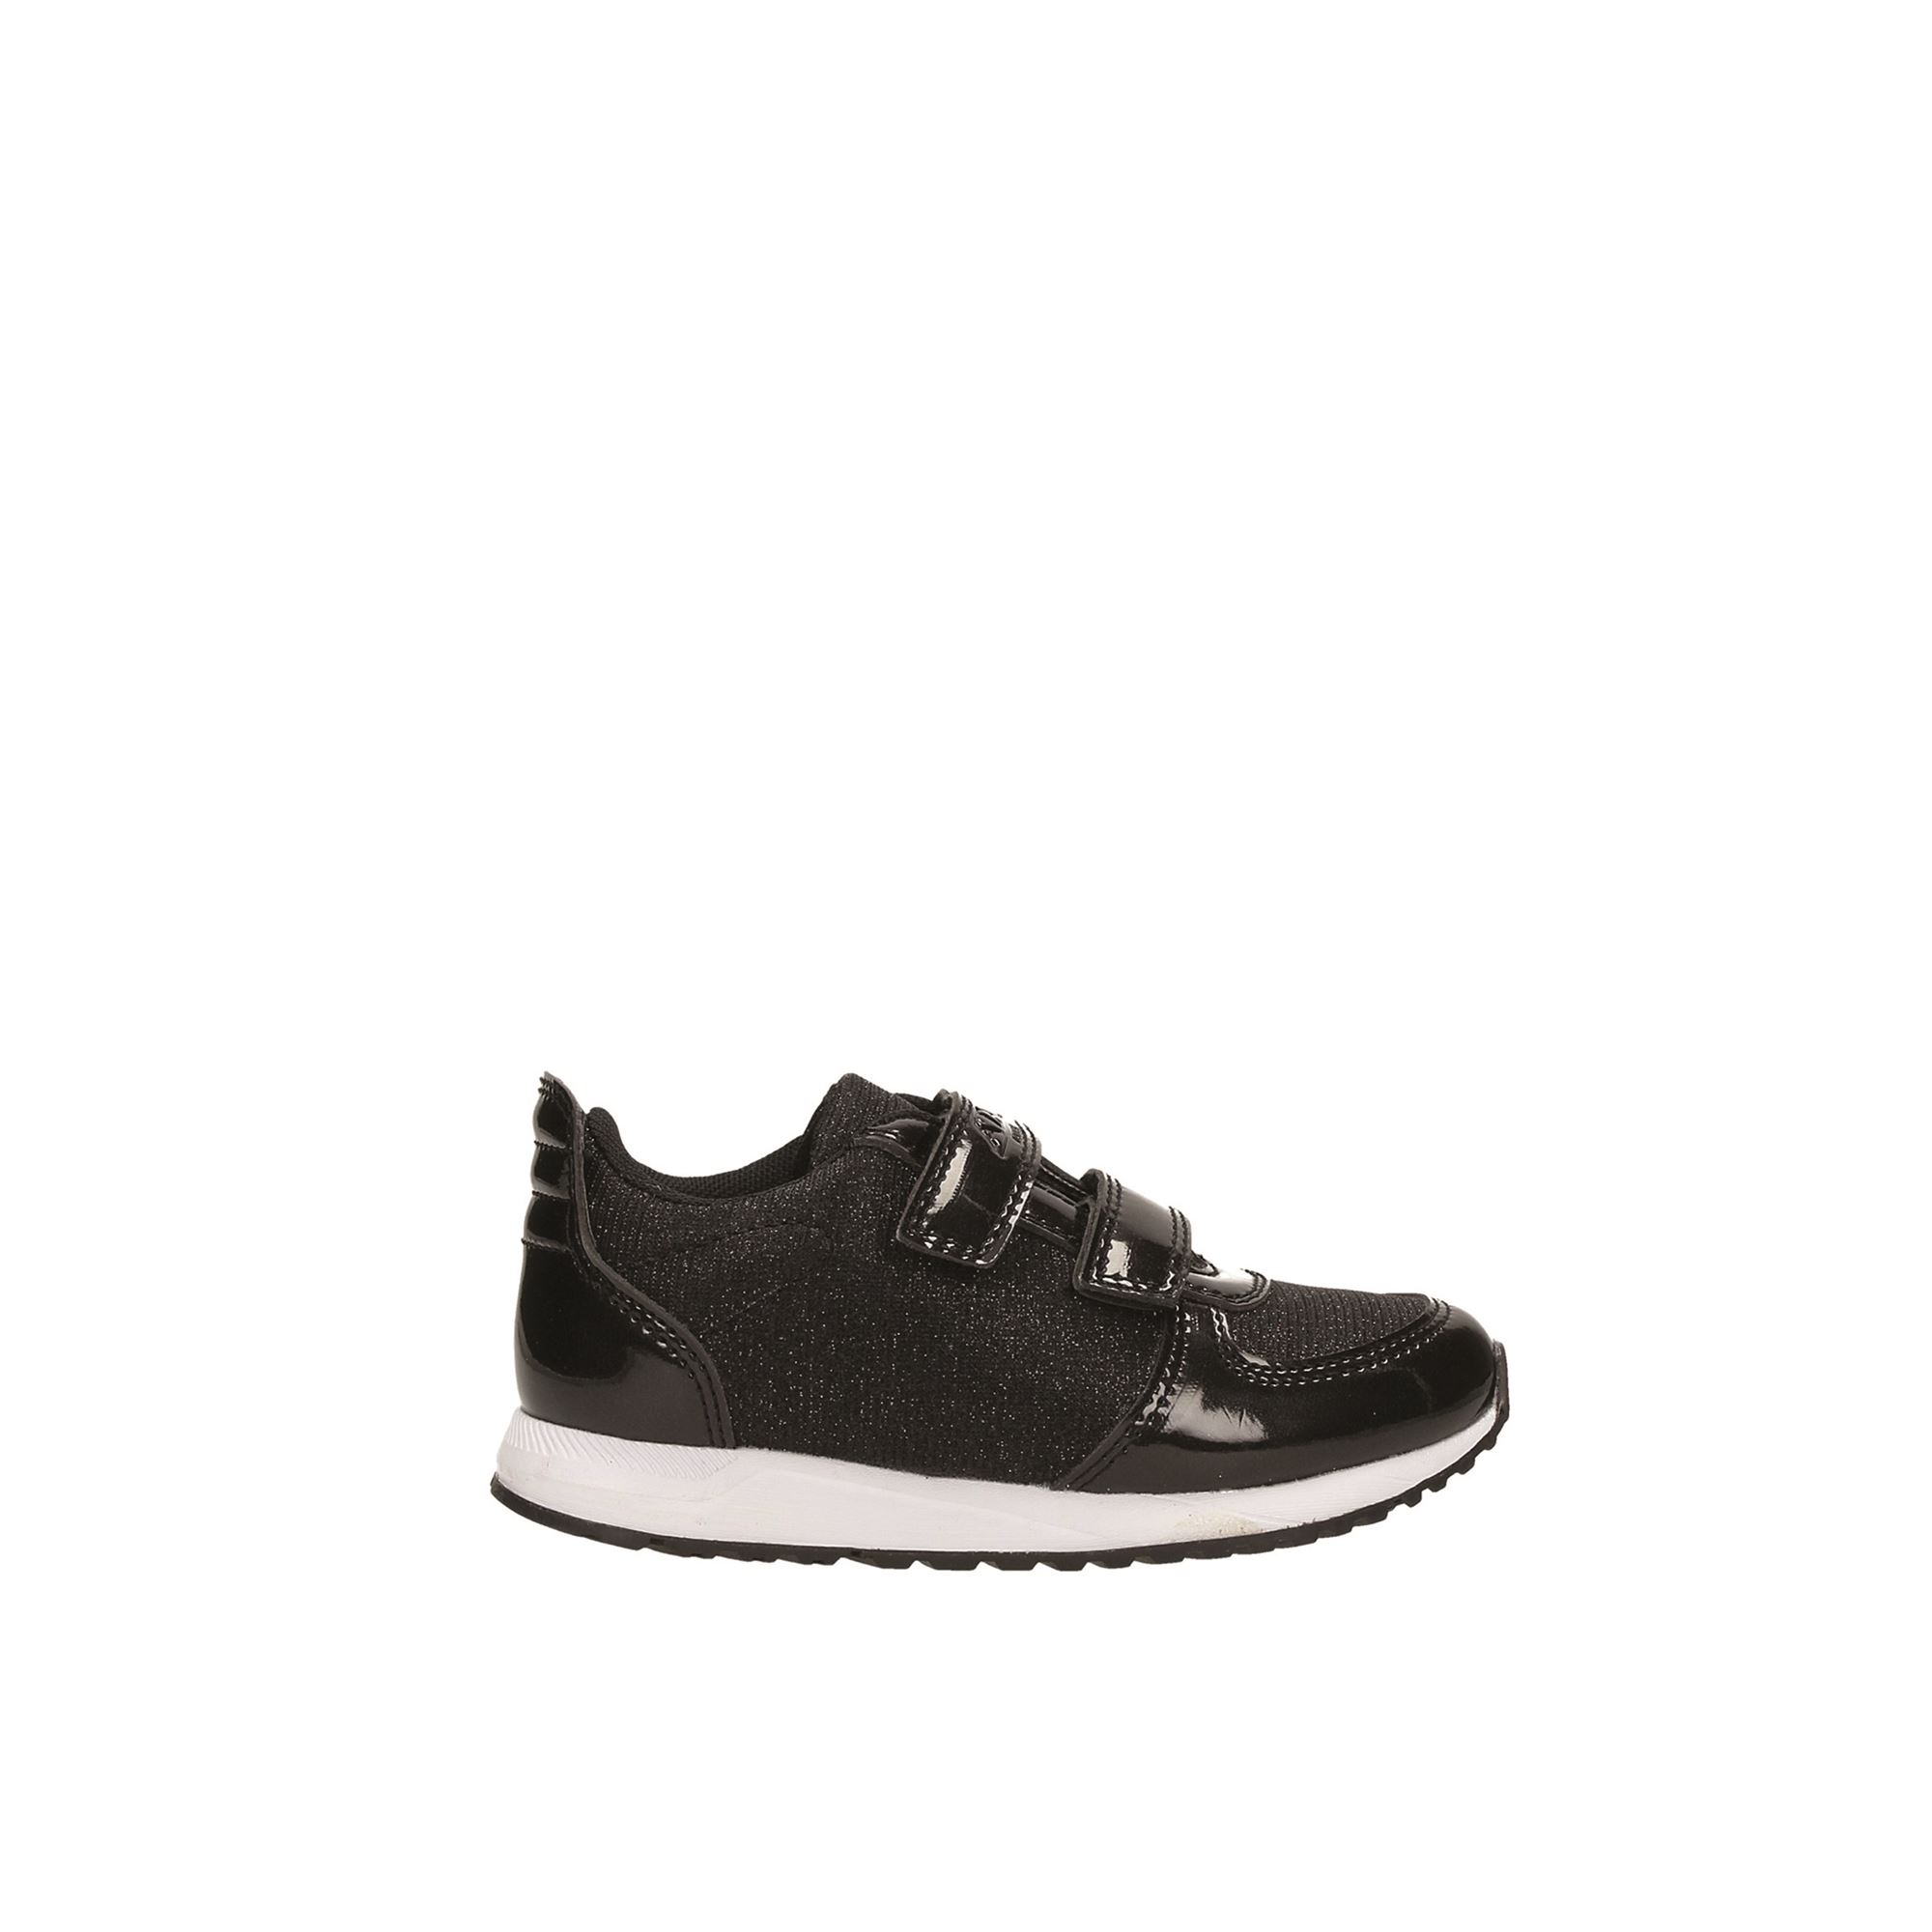 Tata Italia Shoes Junior Sneakers Black K171365-B21